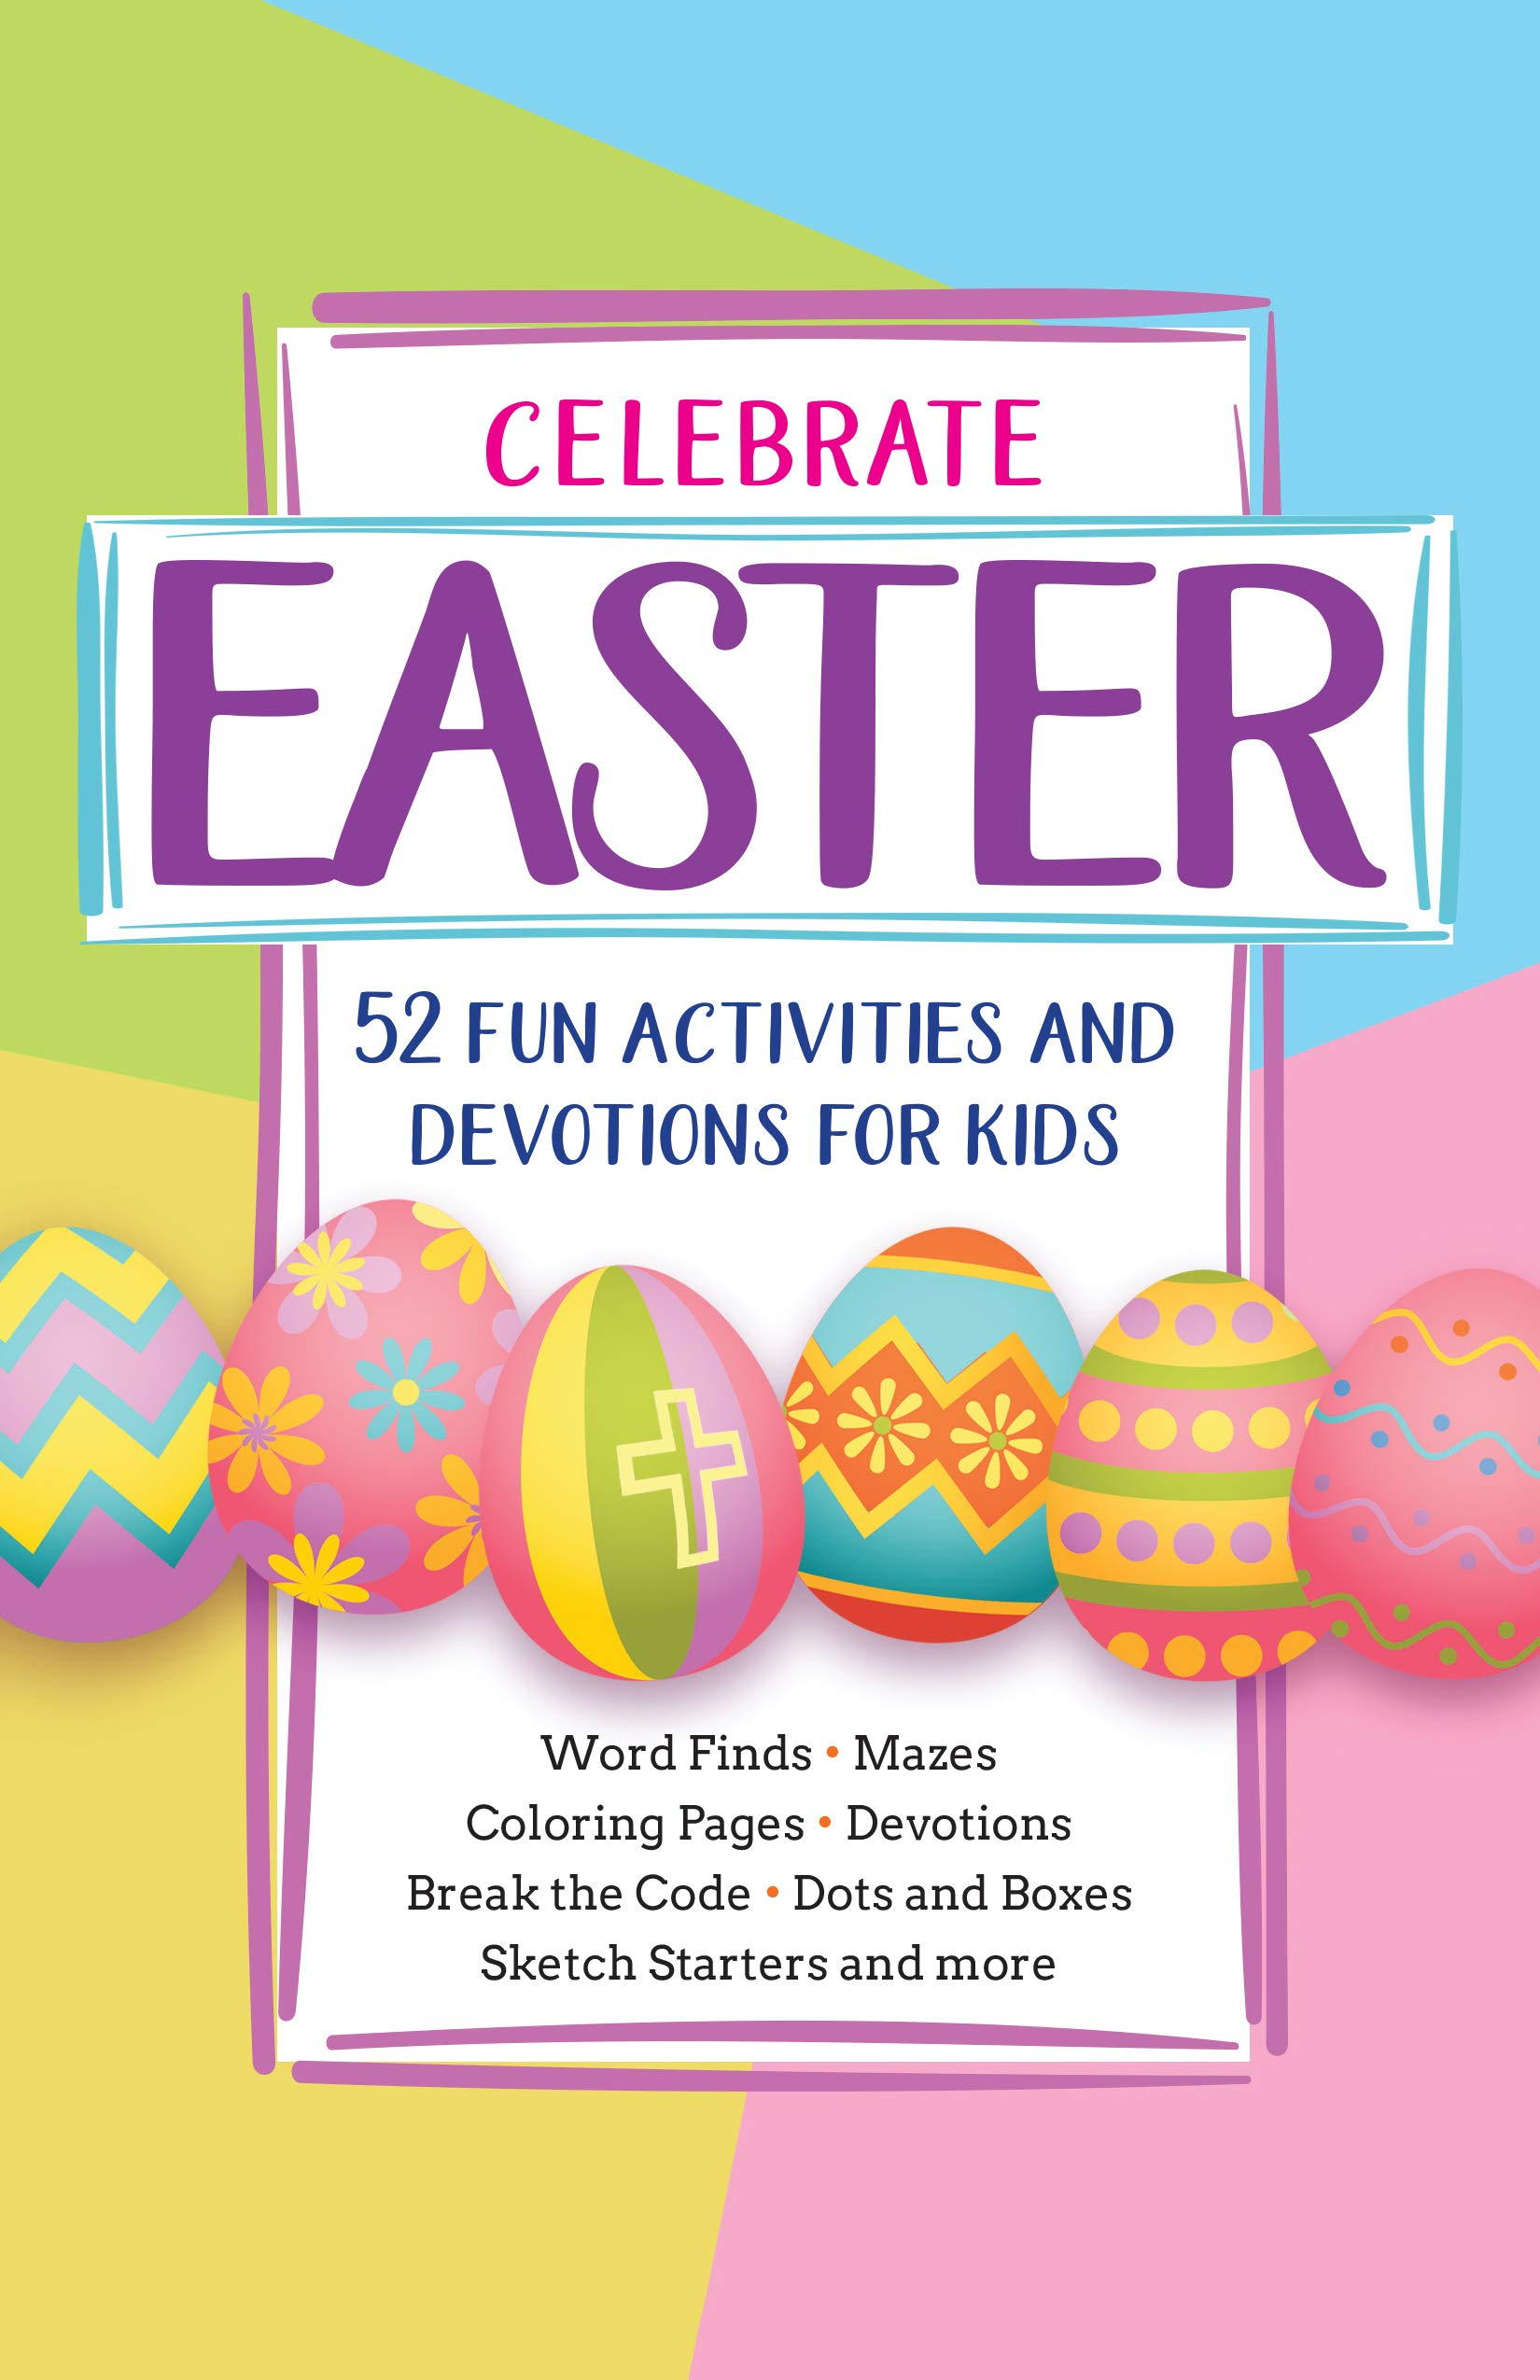 Celebrate Easter 52 Fun Activities And Devotions For Kids Paperback Fun Easter Activity Book For Kids Ages 6 12 Perfect For Easter Baskets Broadstreet Publishing Group Llc 9781424558384 Amazon Com Books